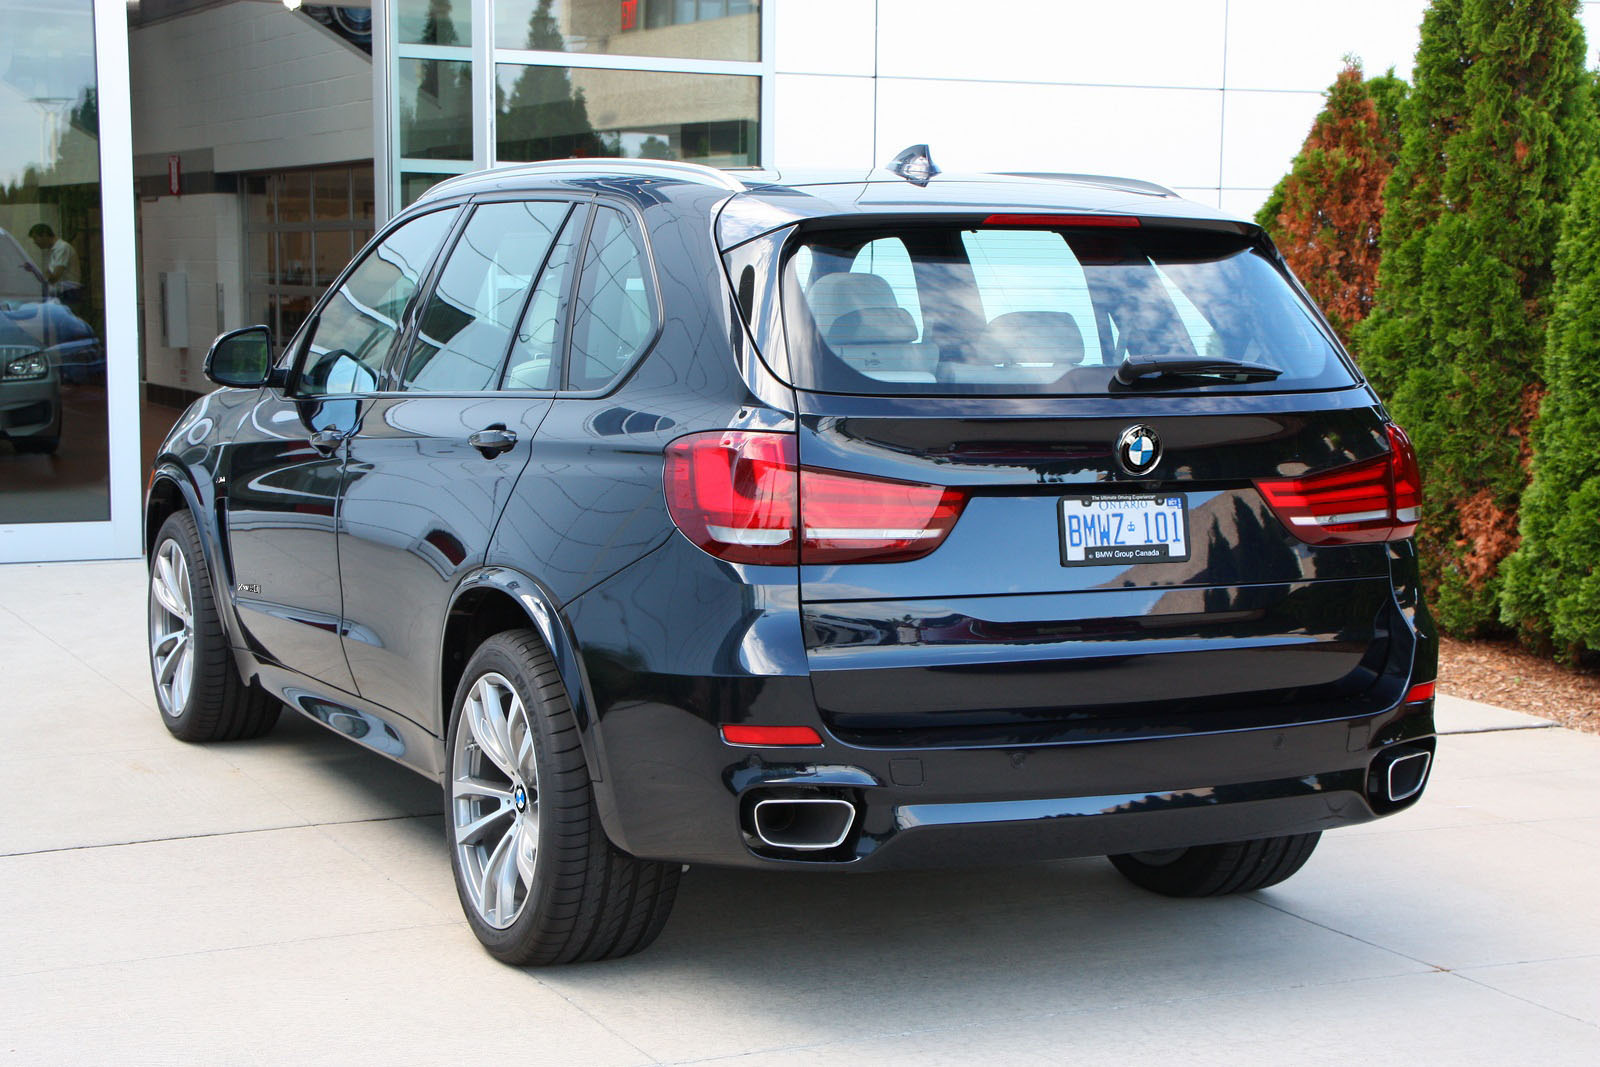 f15 2014 bmw x5 50i m sport uncovered town country bmw. Black Bedroom Furniture Sets. Home Design Ideas